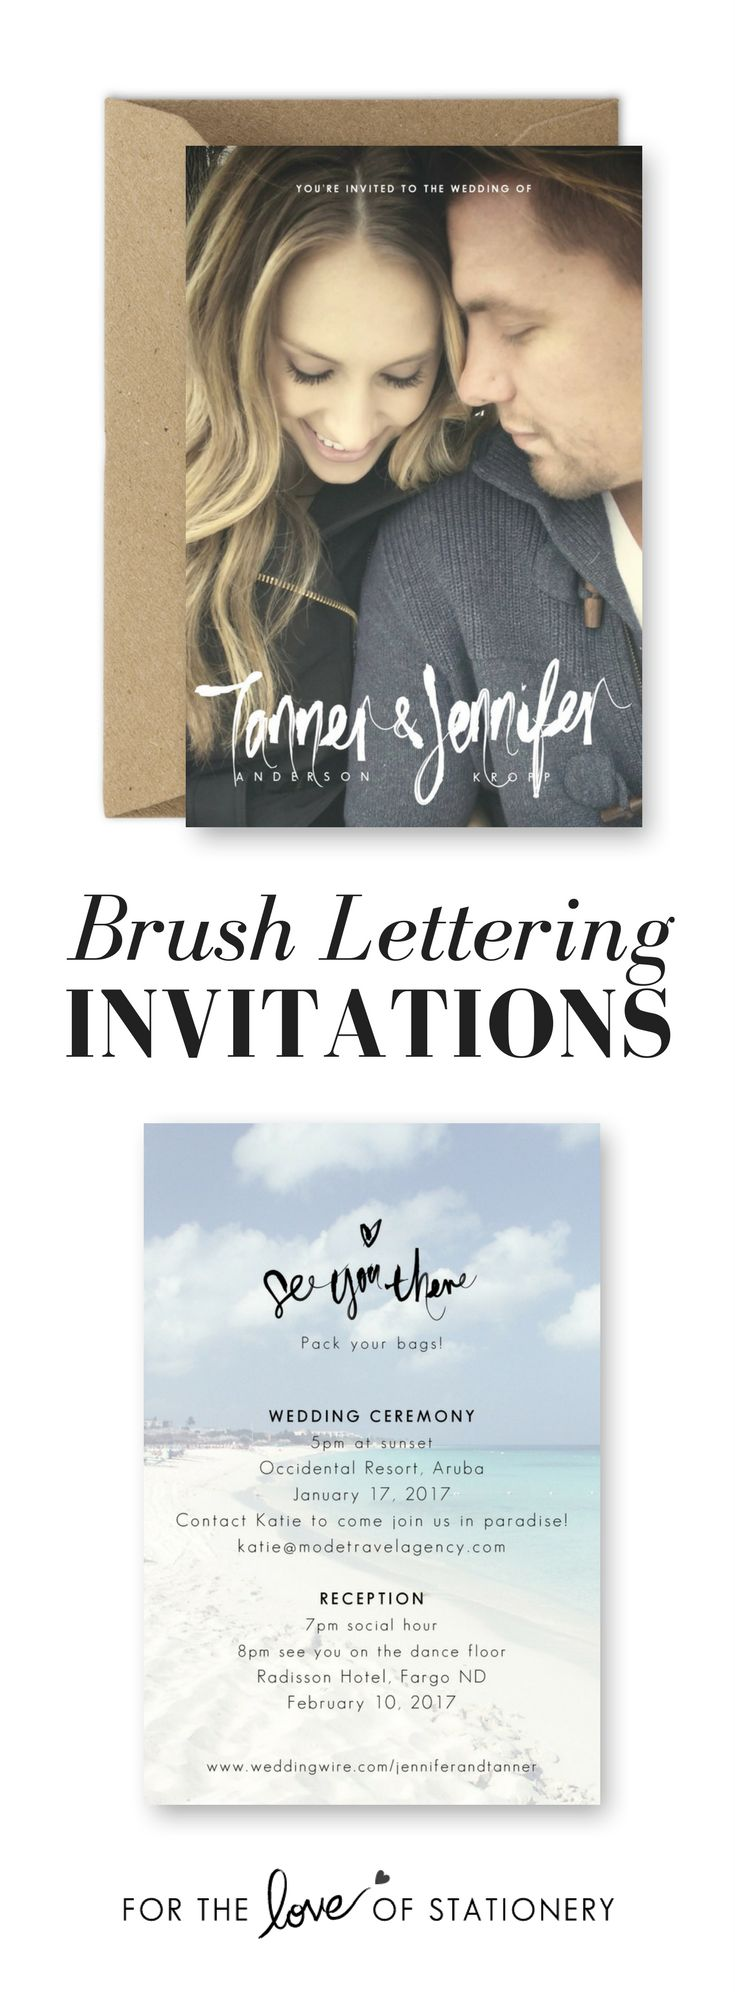 Brush Lettering Wedding Invitations | Destination Wedding Invites | Beach Wedding Inspiration